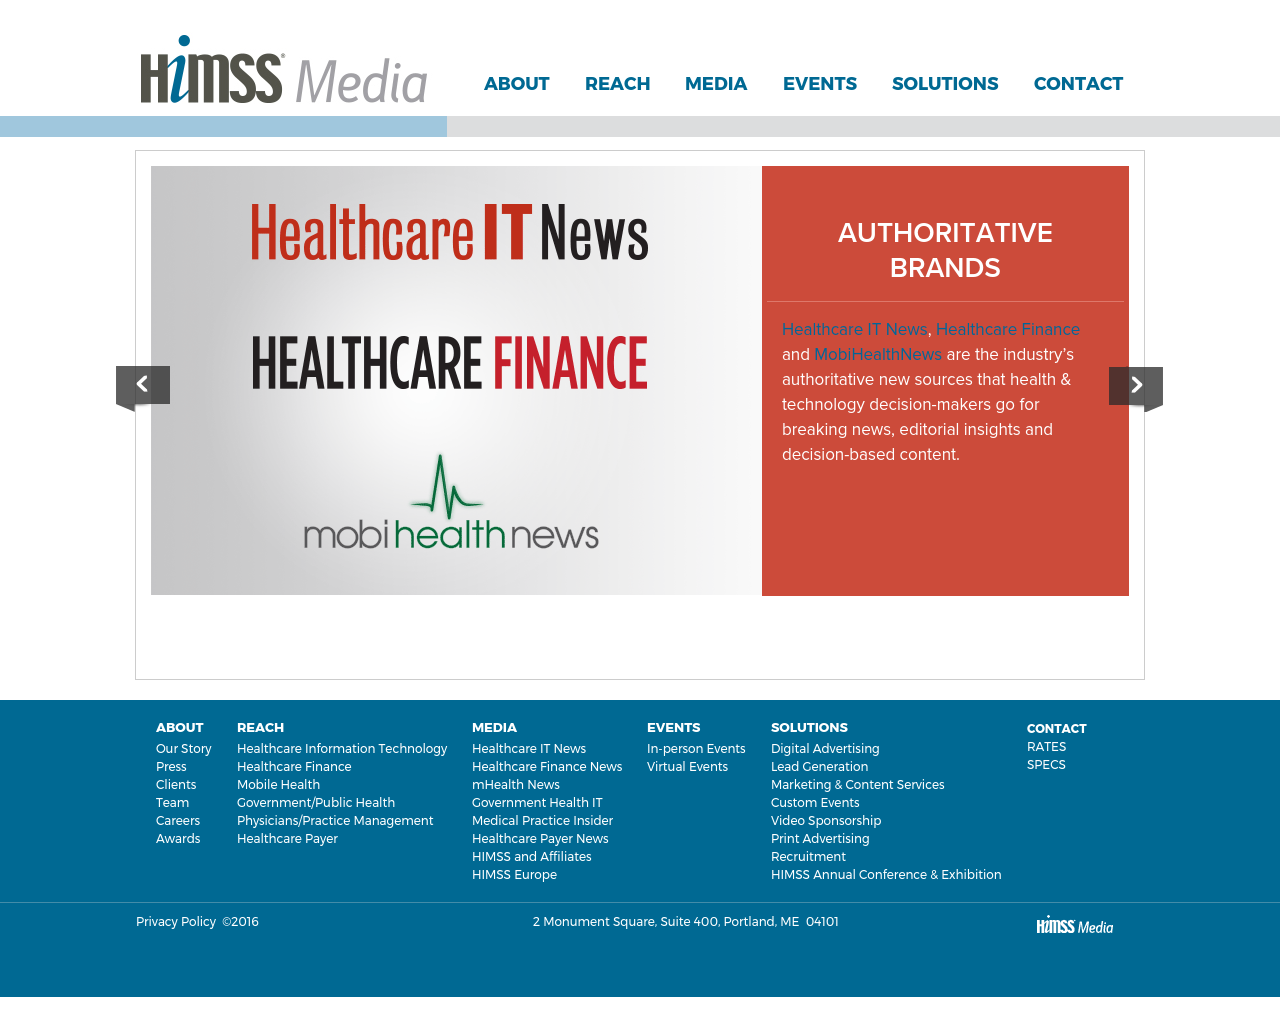 HiMSS-Media-Advertising-Reviews-Pricing